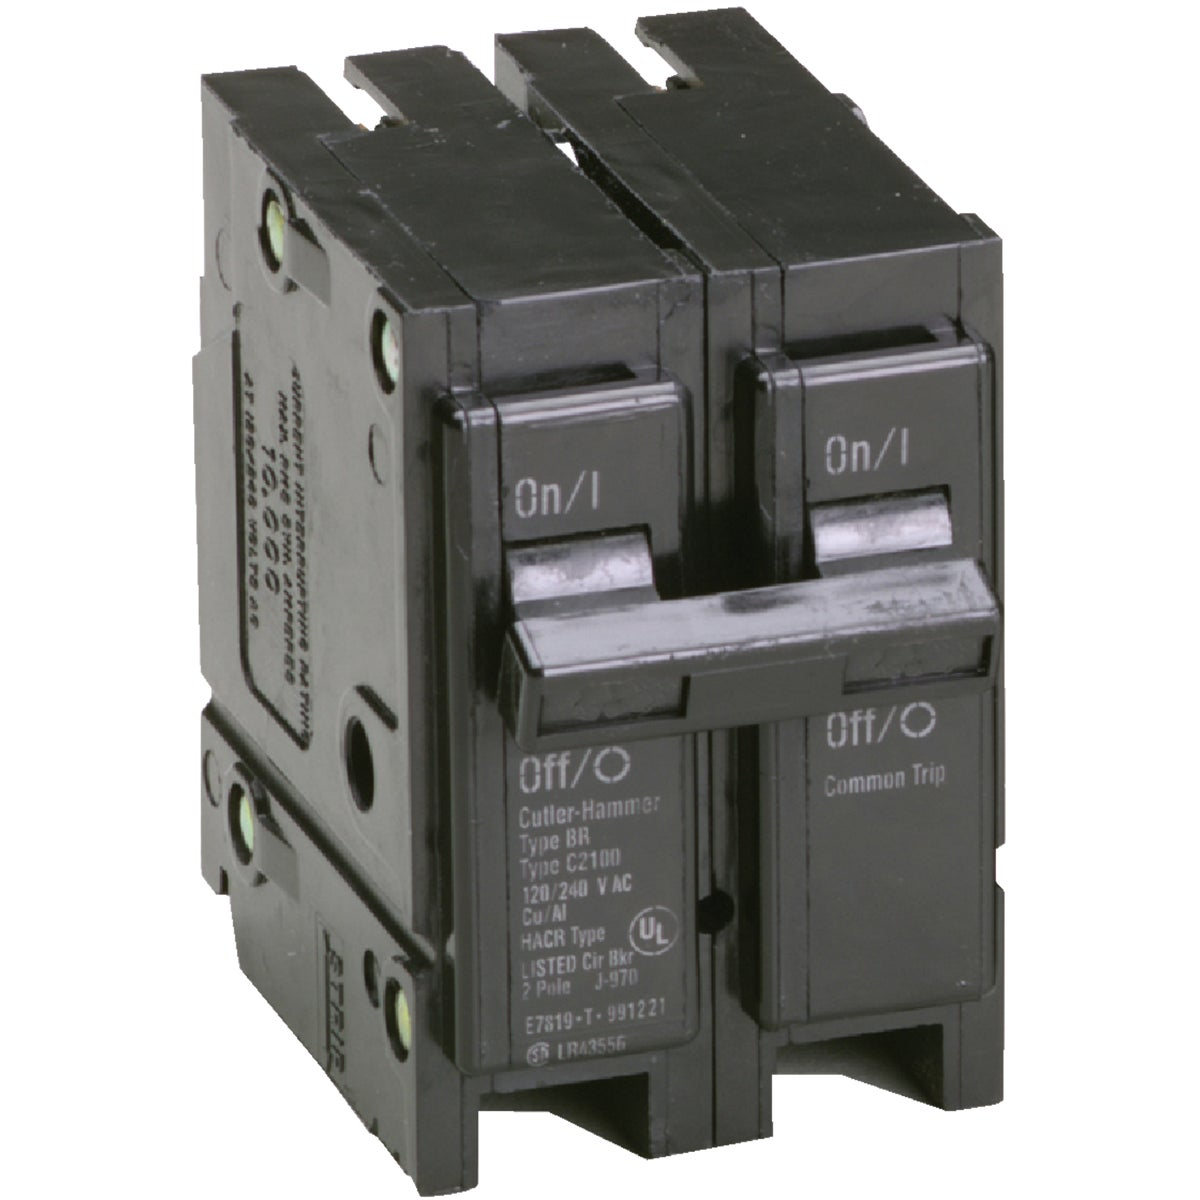 60A 2P CIRCUIT BREAKER - BR260 by Eaton Corporation